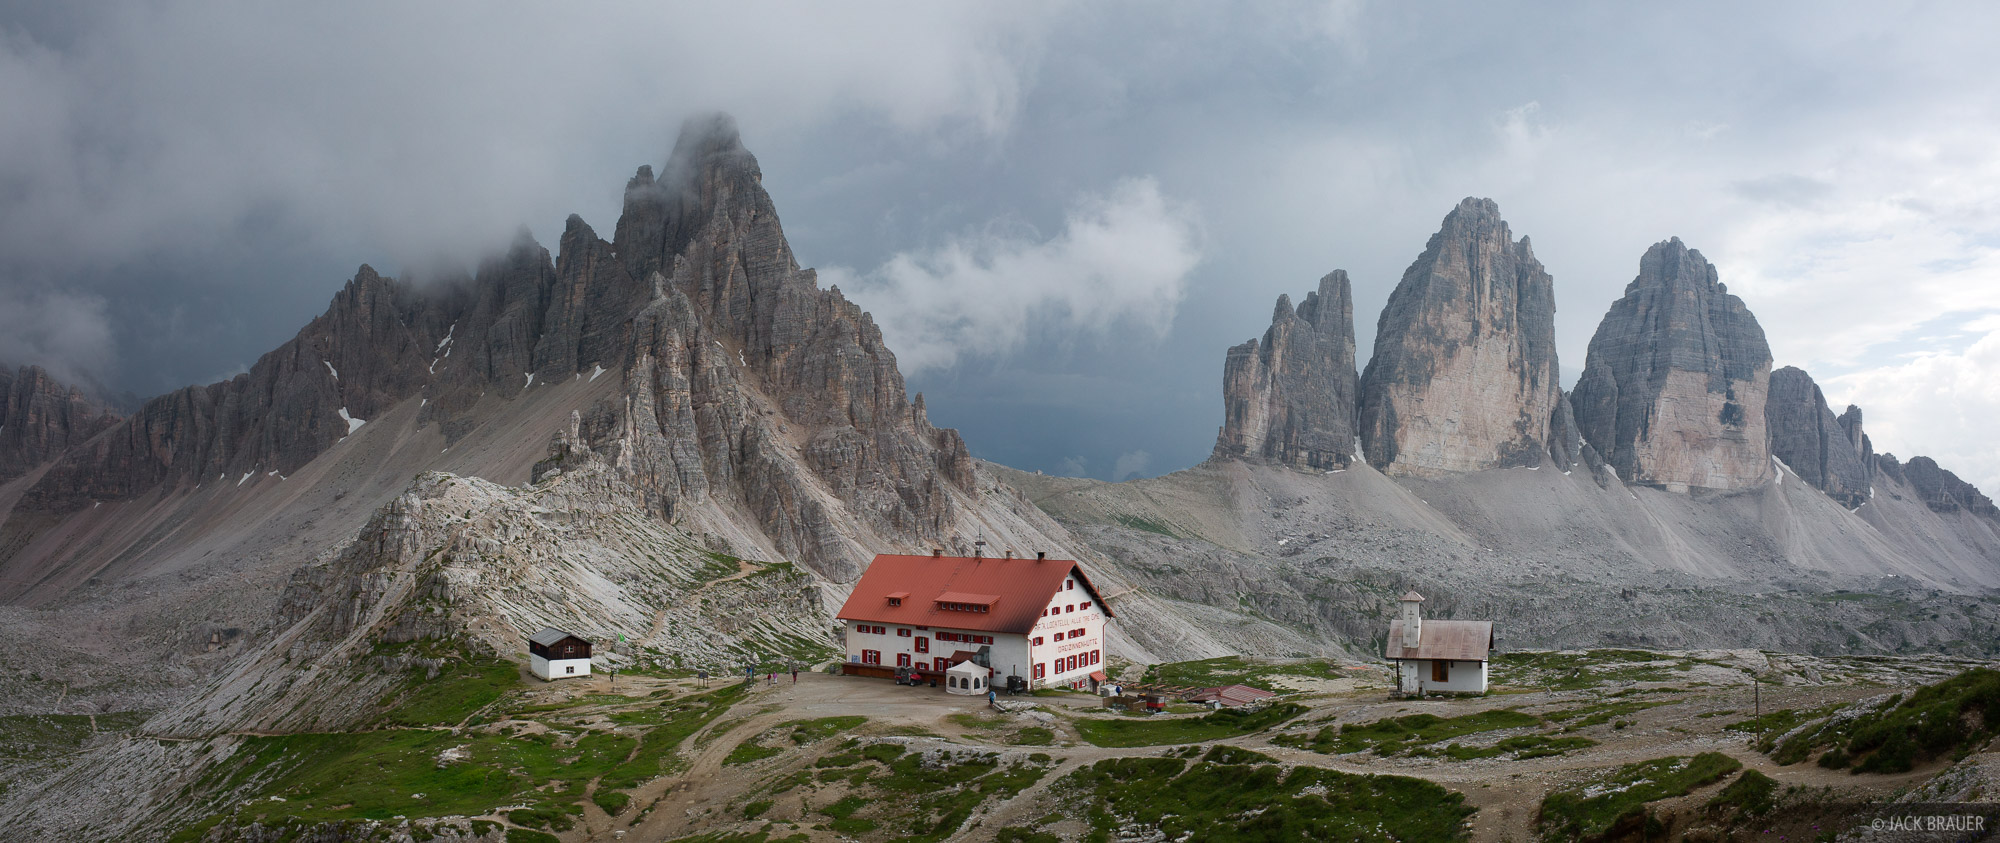 Dolomites, Italy, Monte Paterno, Locatelli Hut, Tre Cime, photo